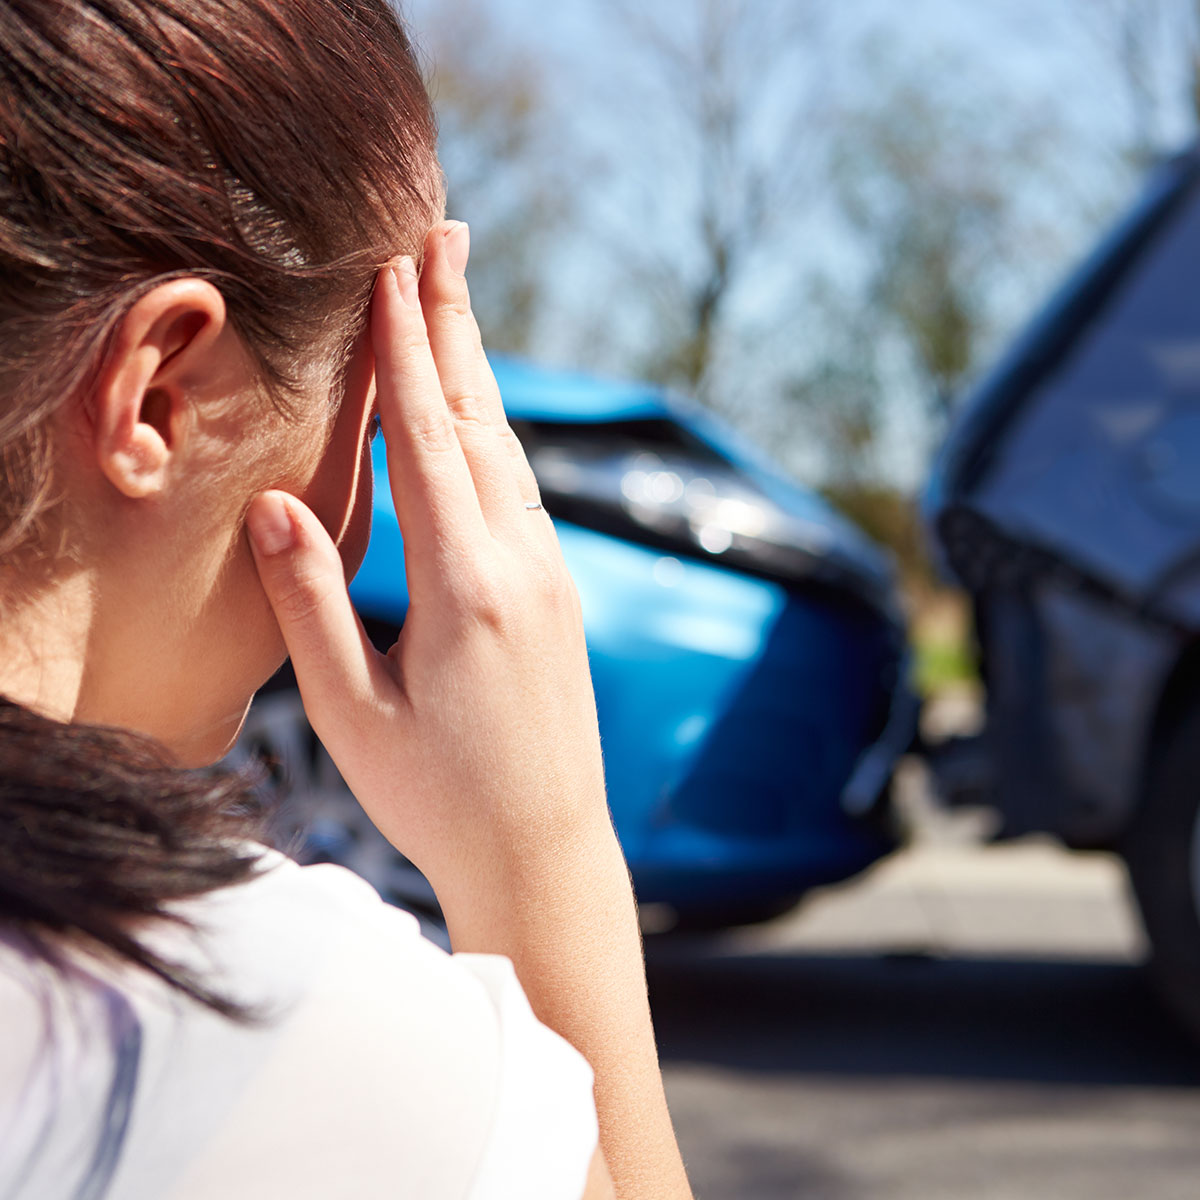 Motor Vehicle Accident Recovery Program